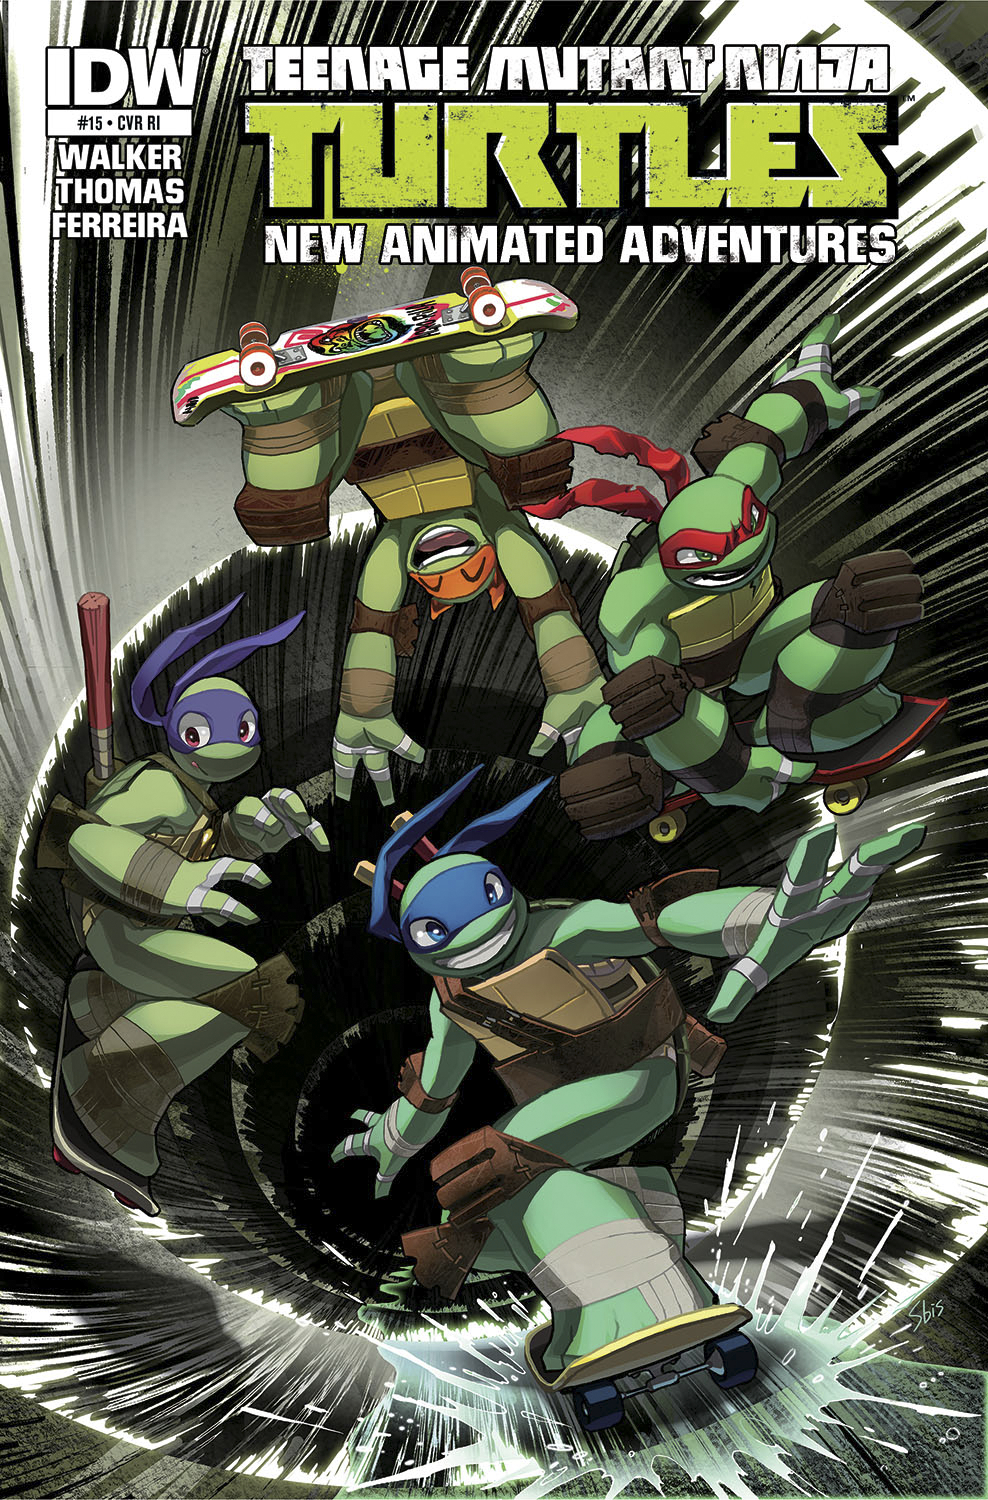 TMNT NEW ANIMATED ADVENTURES #15